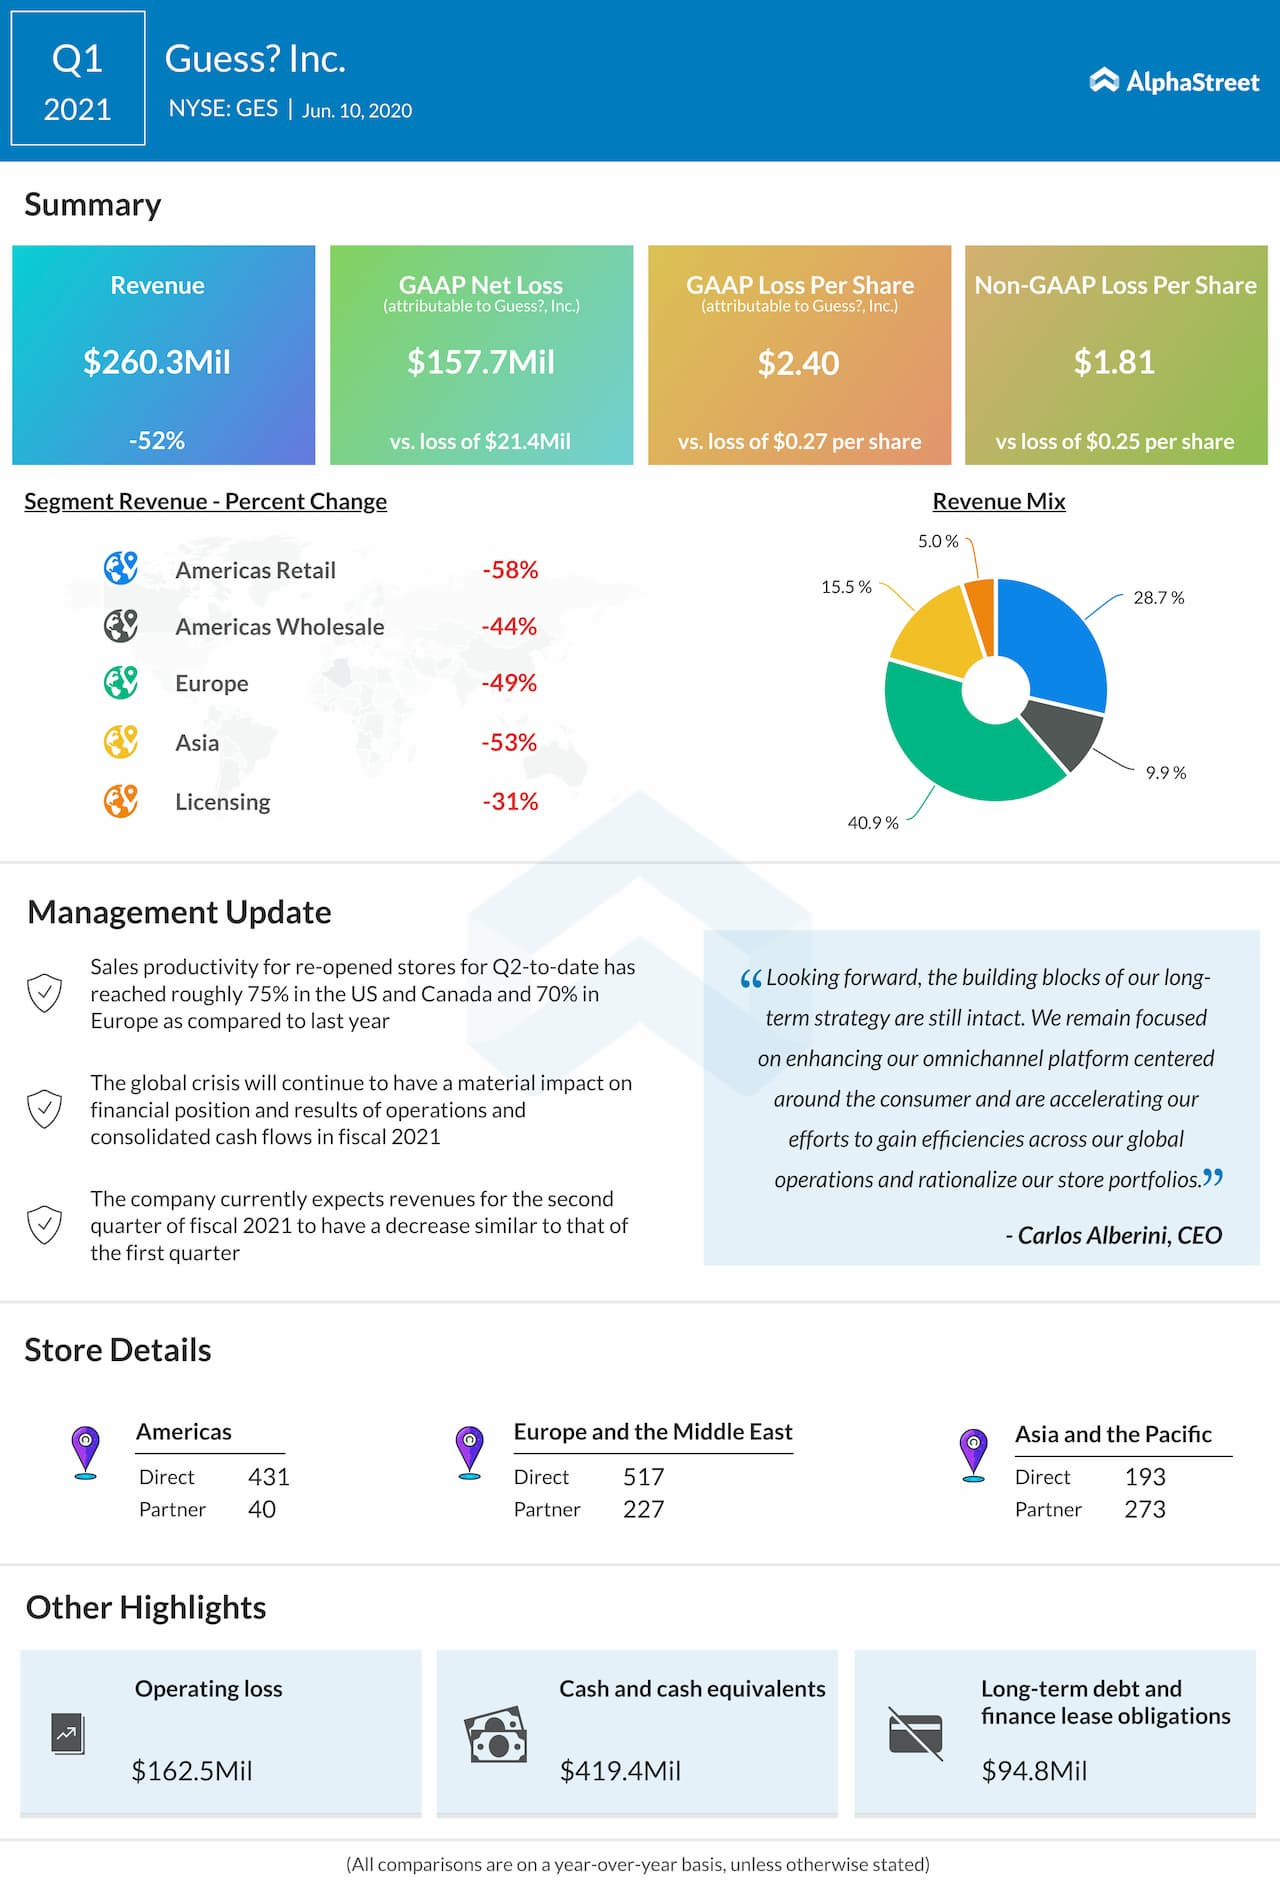 Guess (GES) Q1 2021 earnings